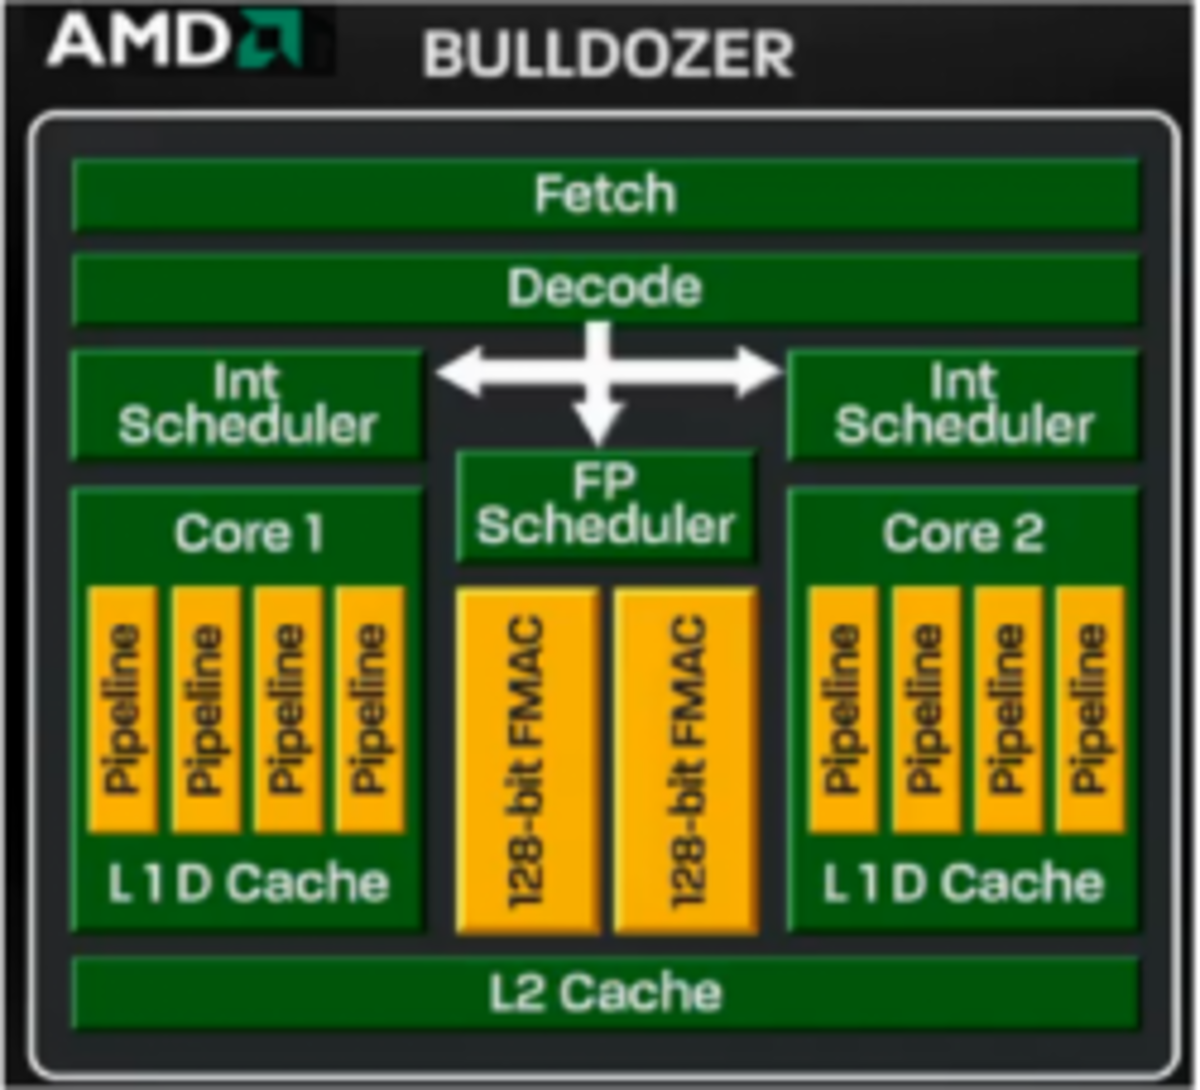 AMD Bulldozer Microarchitechture